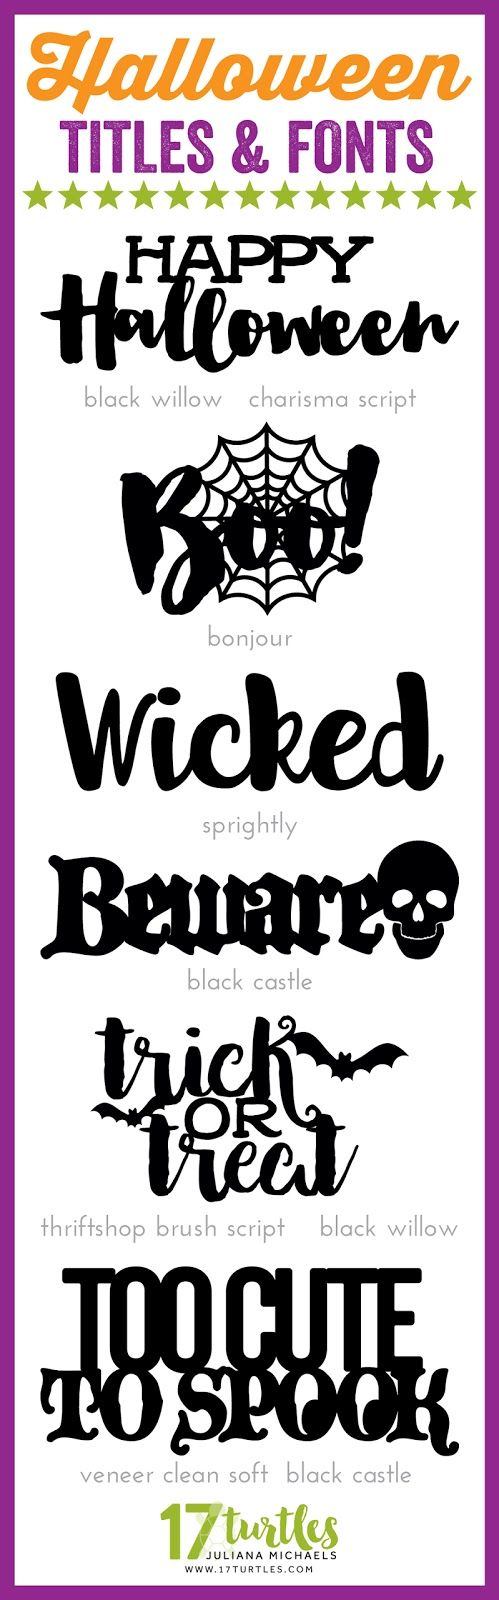 halloween titles and fontsjuliana michaels 17turtles | fun fonts